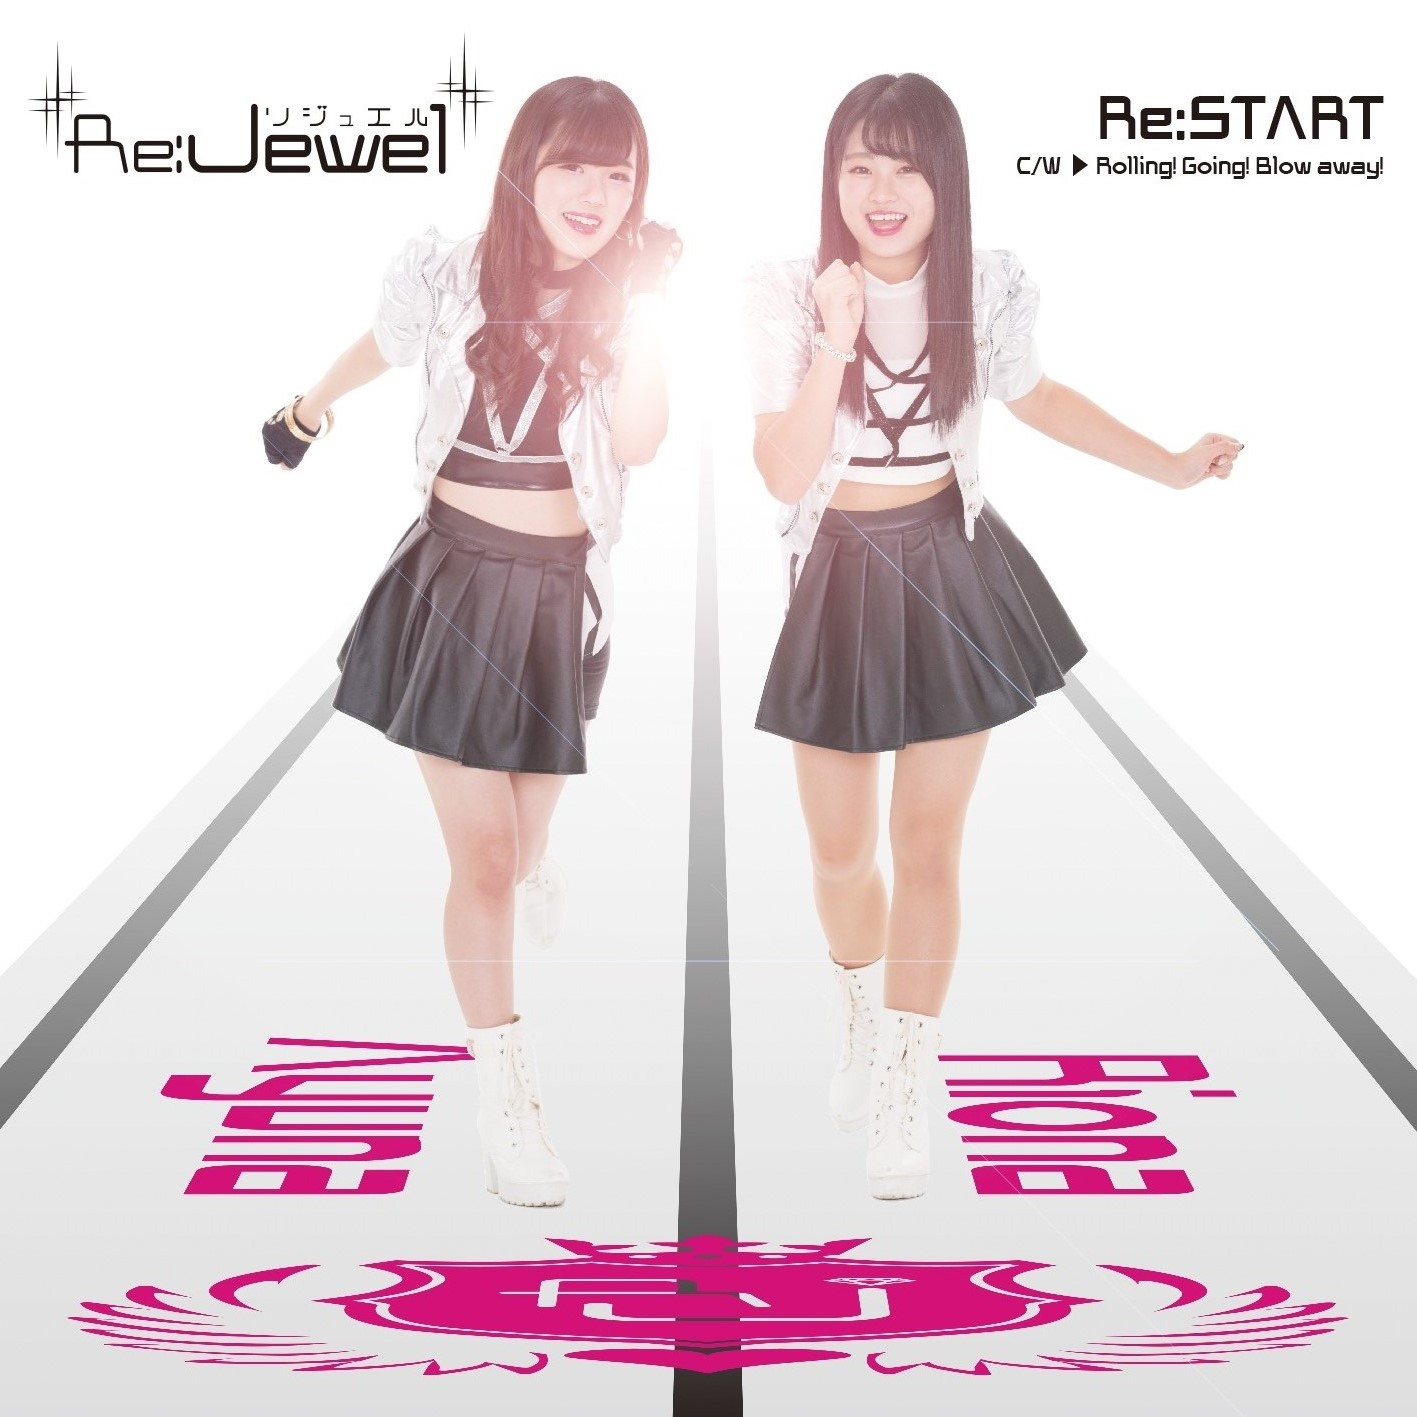 Re:Jewel「Re:START」